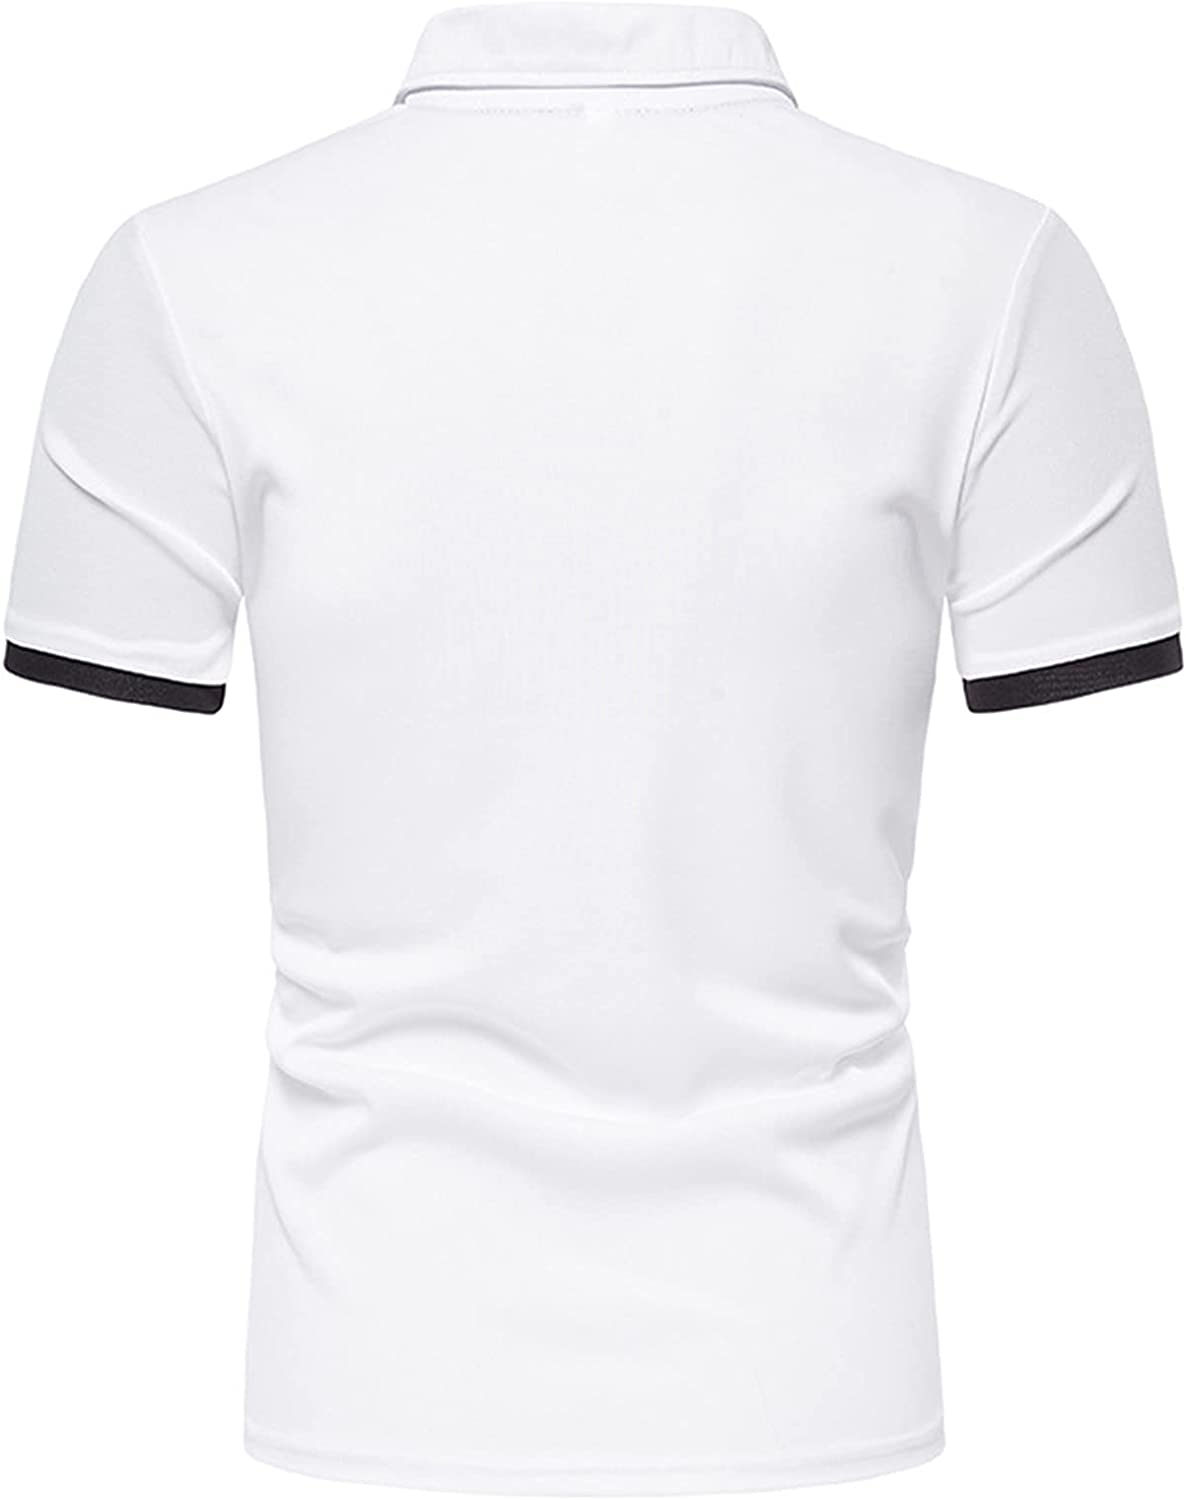 Mens Fashion Workout Polo Shirts Casual Sport Buttons Short Sleeve Shirts Fit Printed Shirts